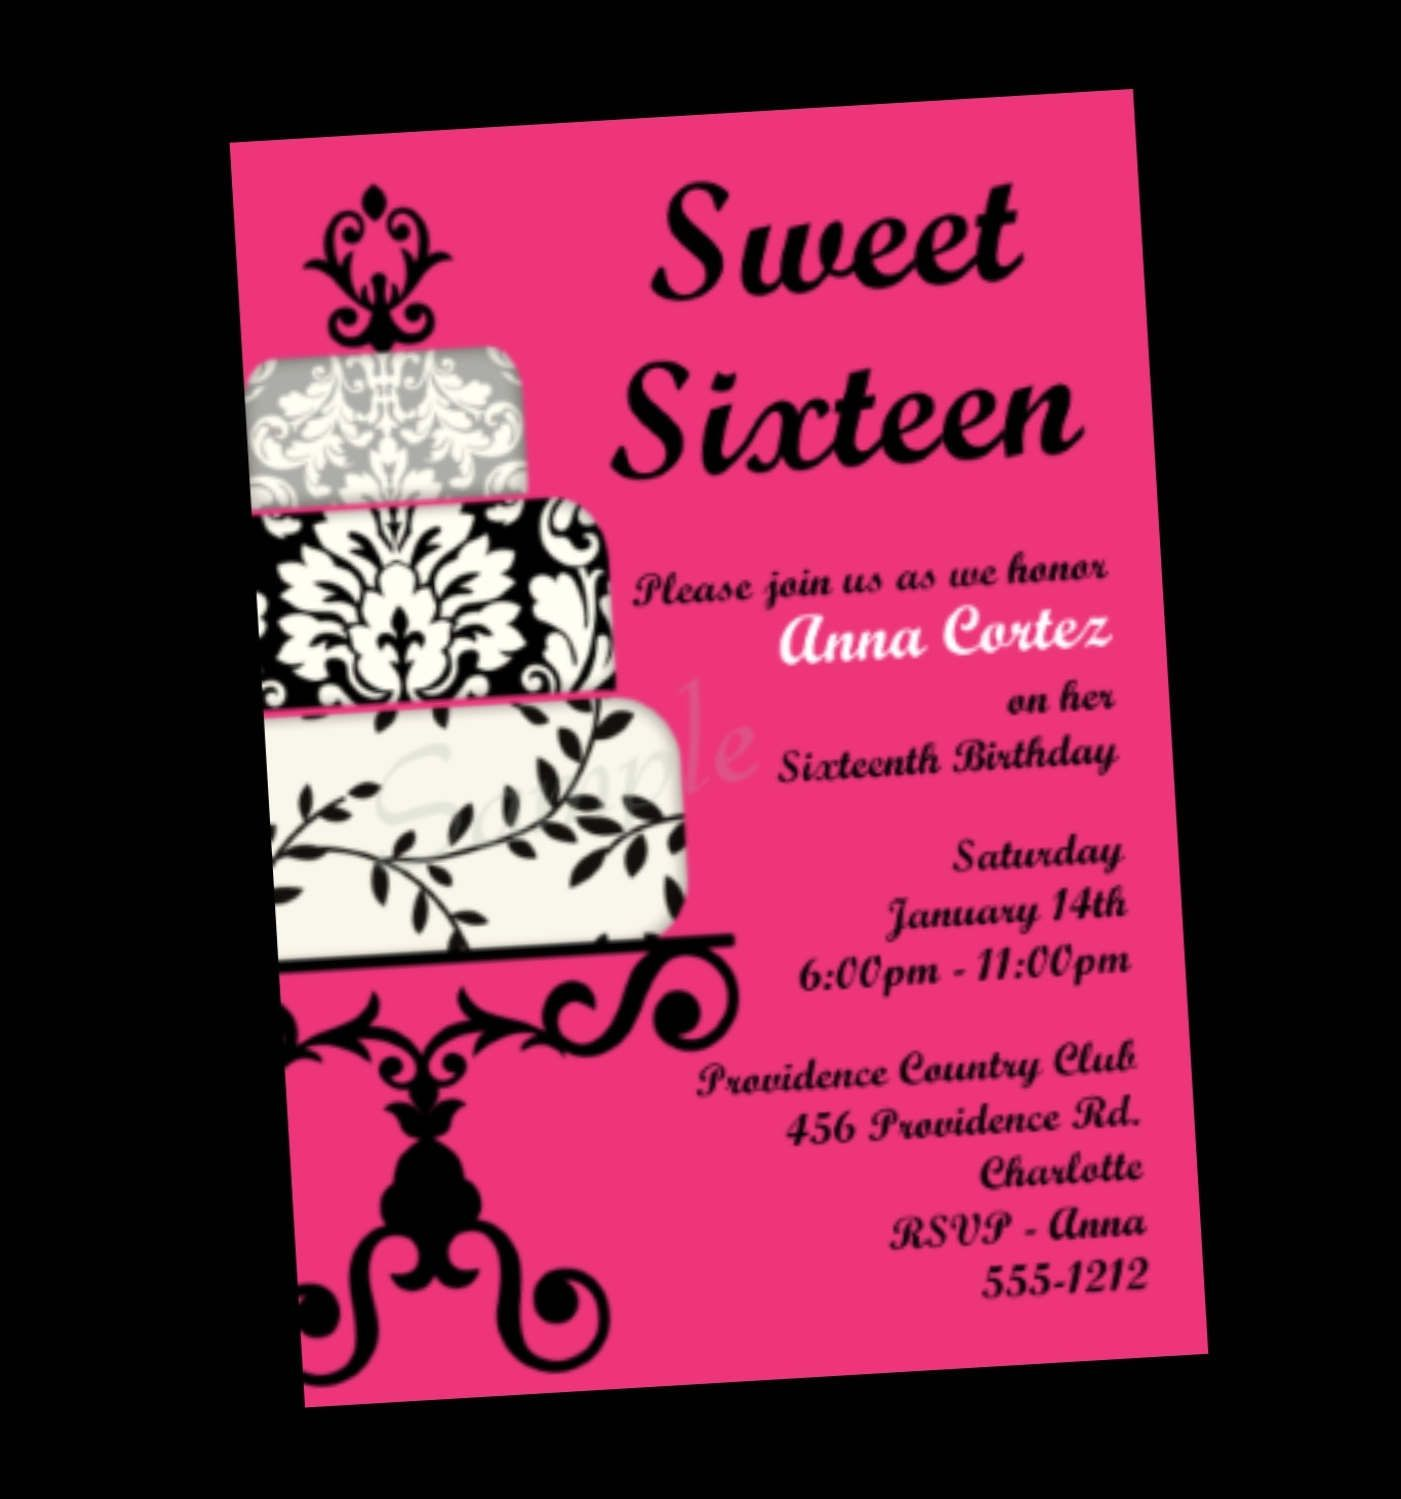 Invitations for sweet 16 birthday sweet 16 birthday invitations items similar to sweet 16 birthday invitation sweet sixteen party invitations printable or printed on etsy monicamarmolfo Image collections